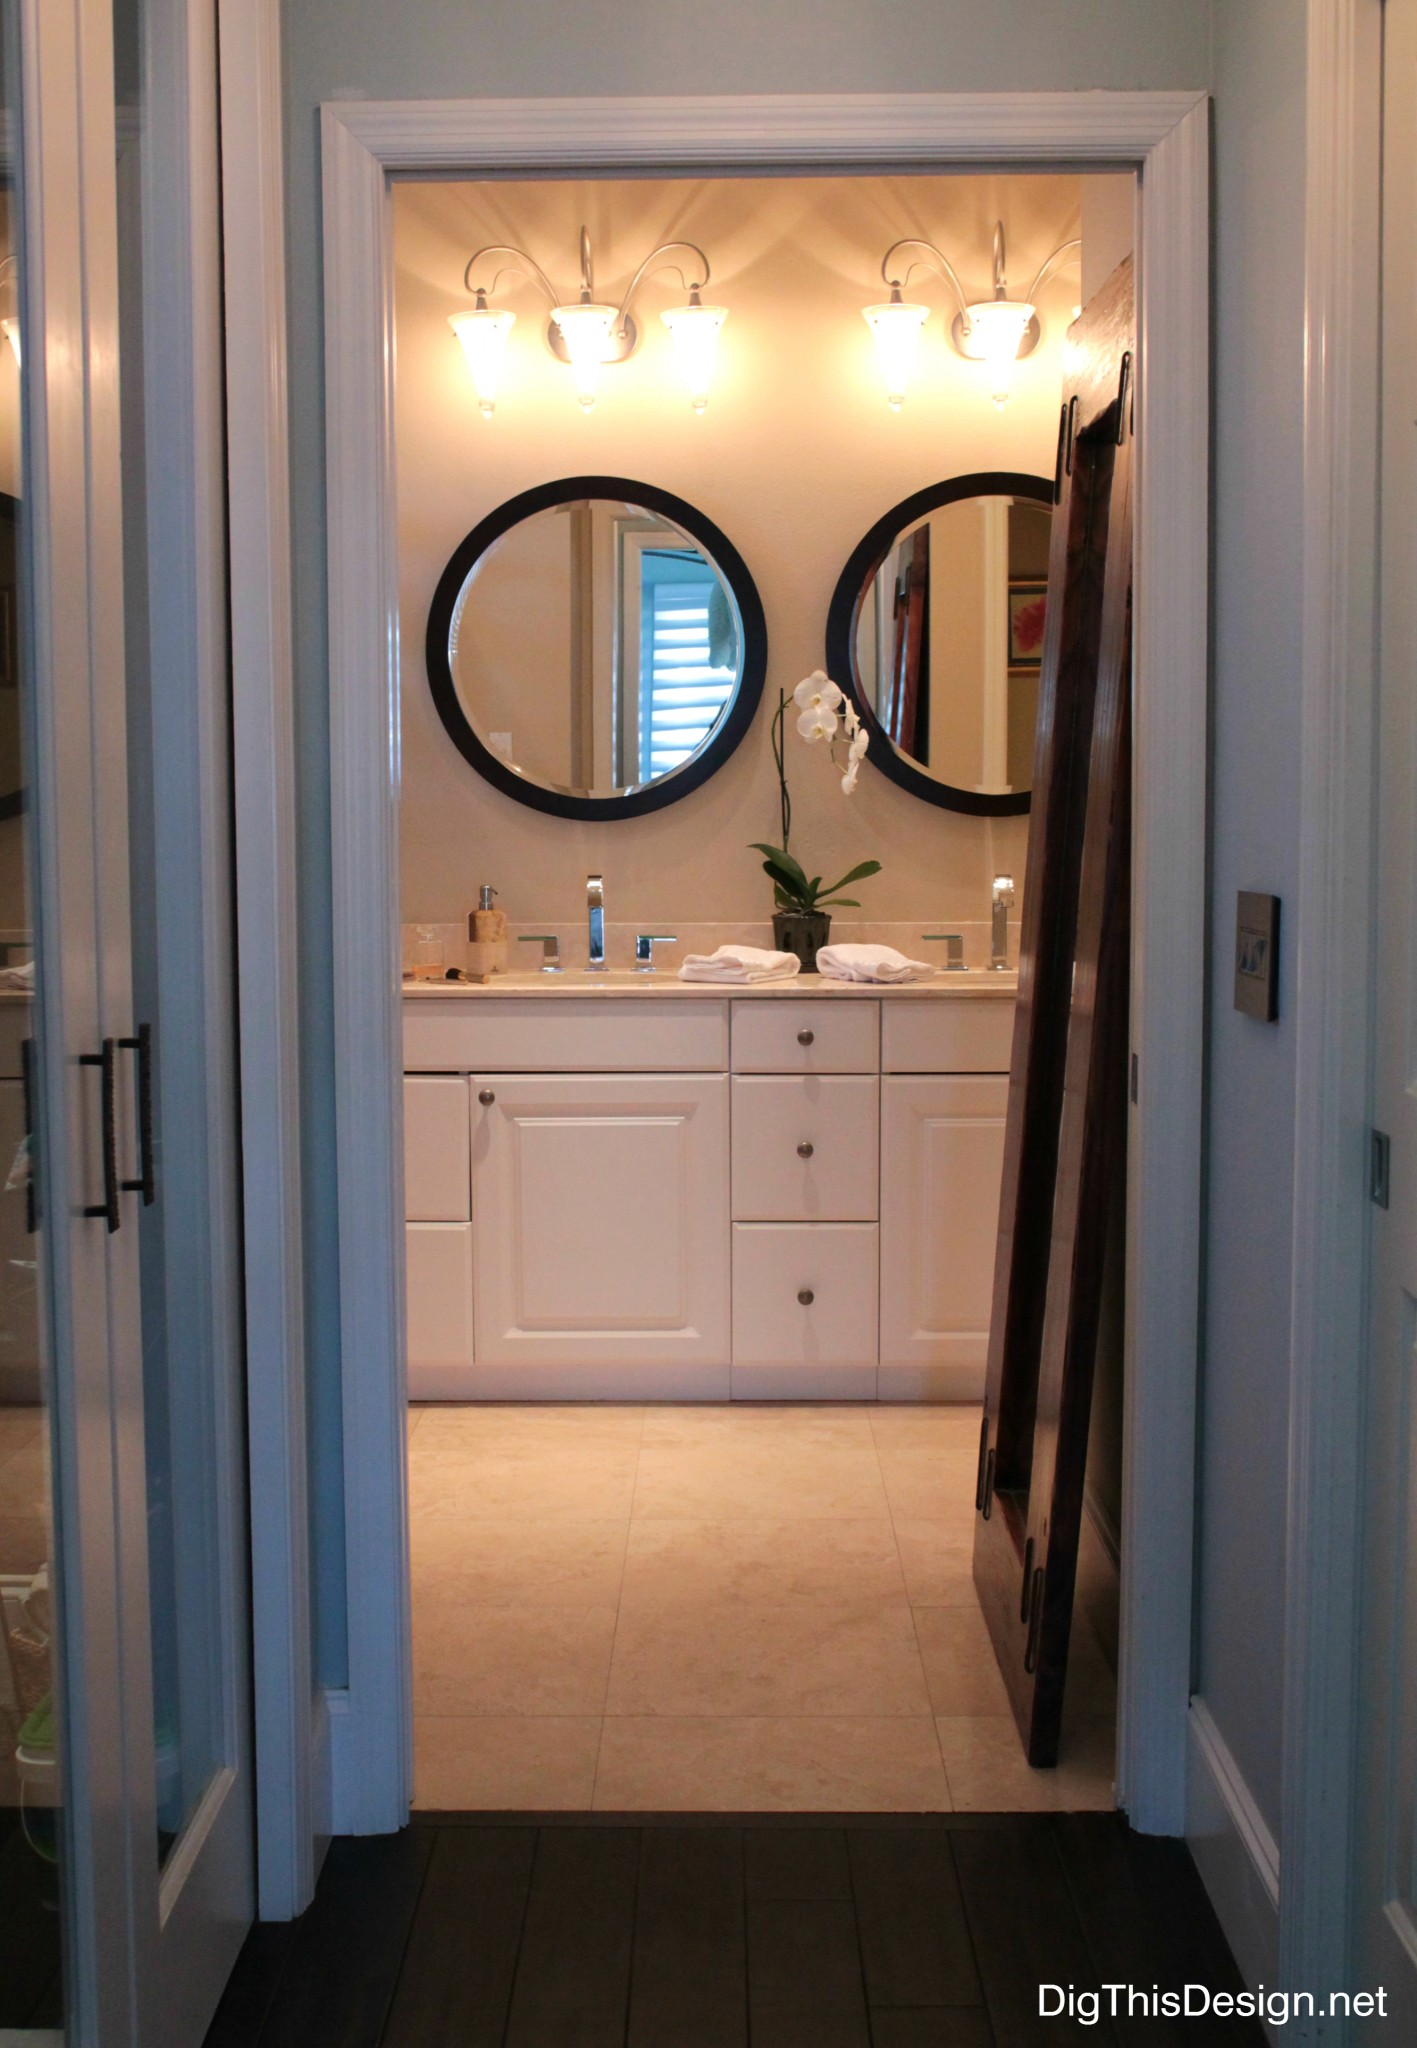 Maybe You Dont Need A Whole New Bathroom Tweaks To Give A New Look - I need a new bathroom